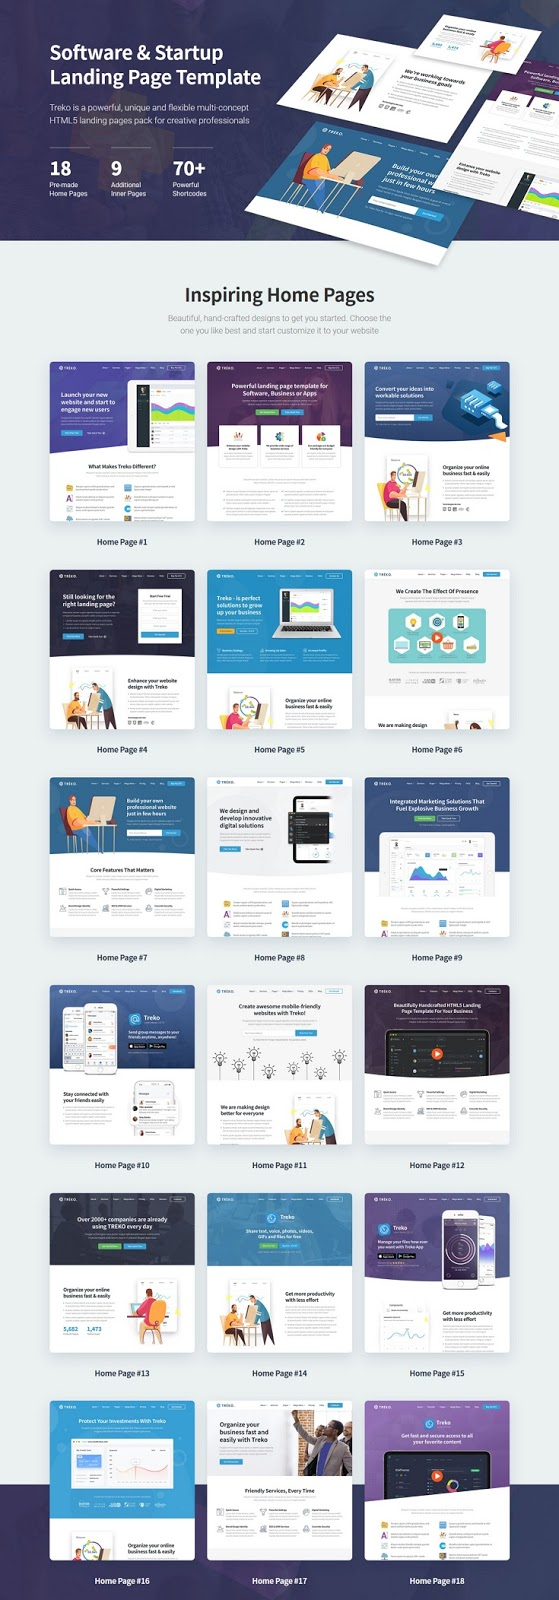 Startup and Software Landing Page Template